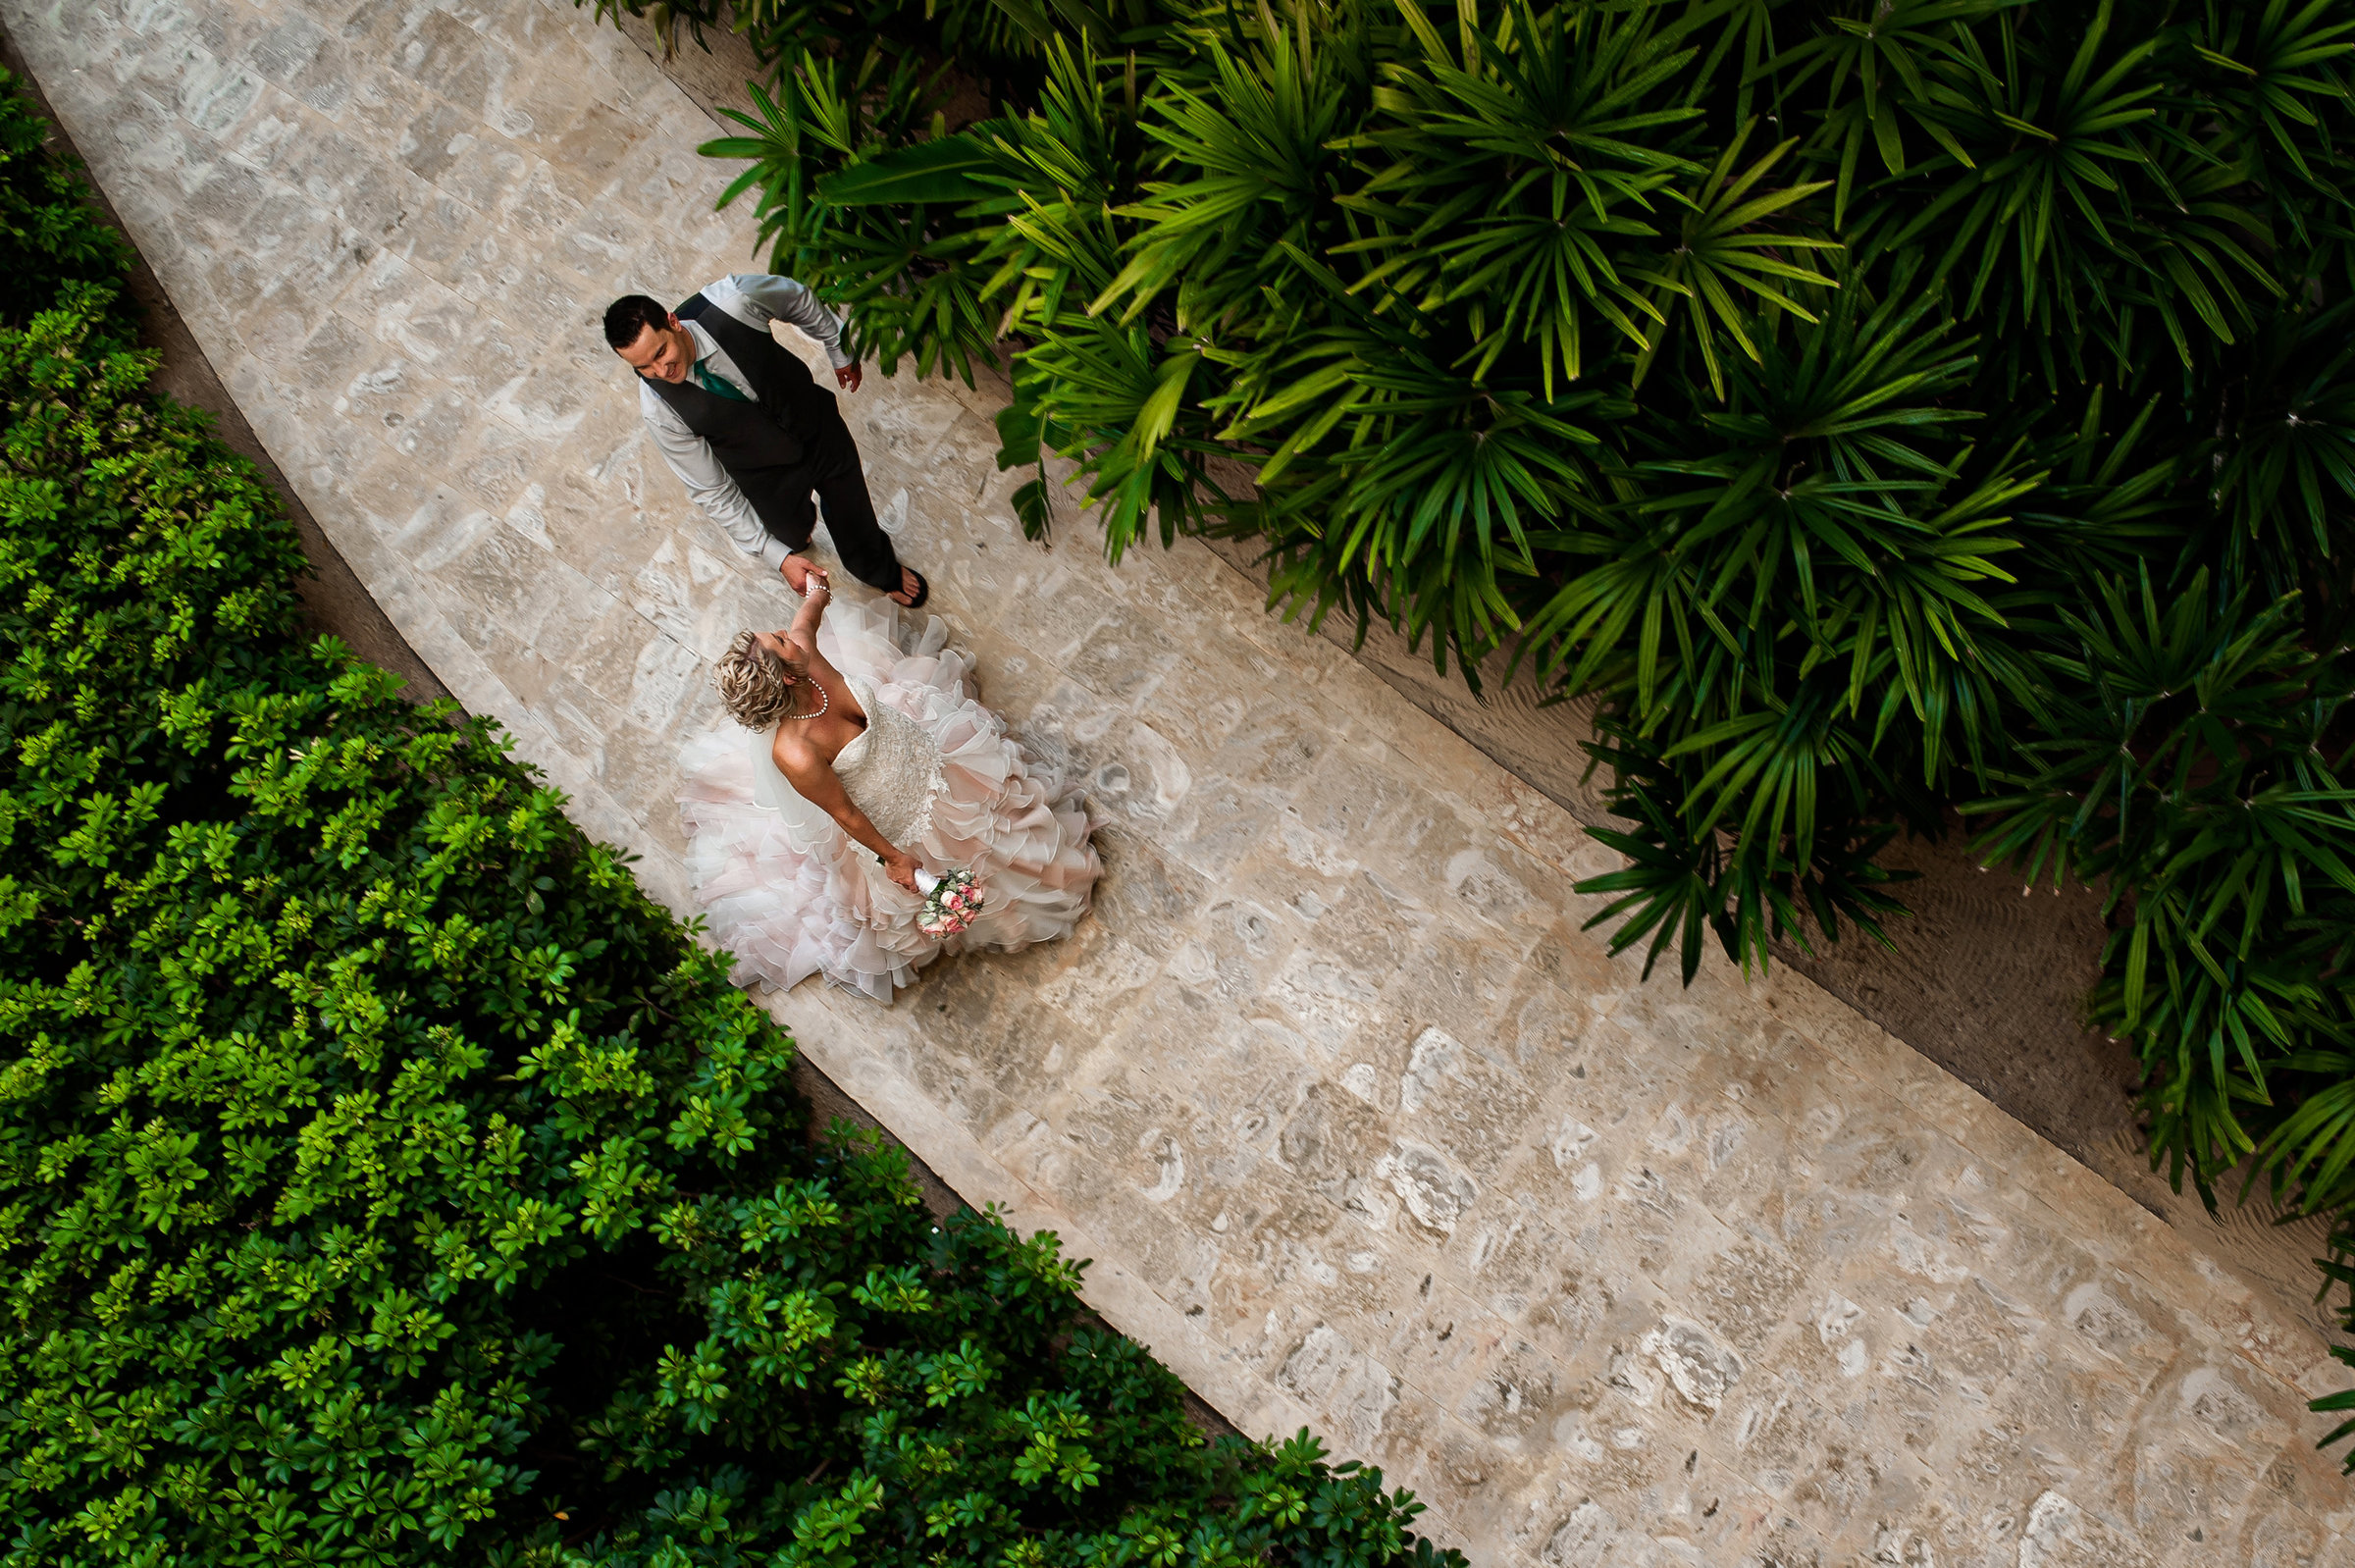 Bride and Groom  at Now Larimar Resort, Punta Cana Dominican Republic by Chrystal Stringer